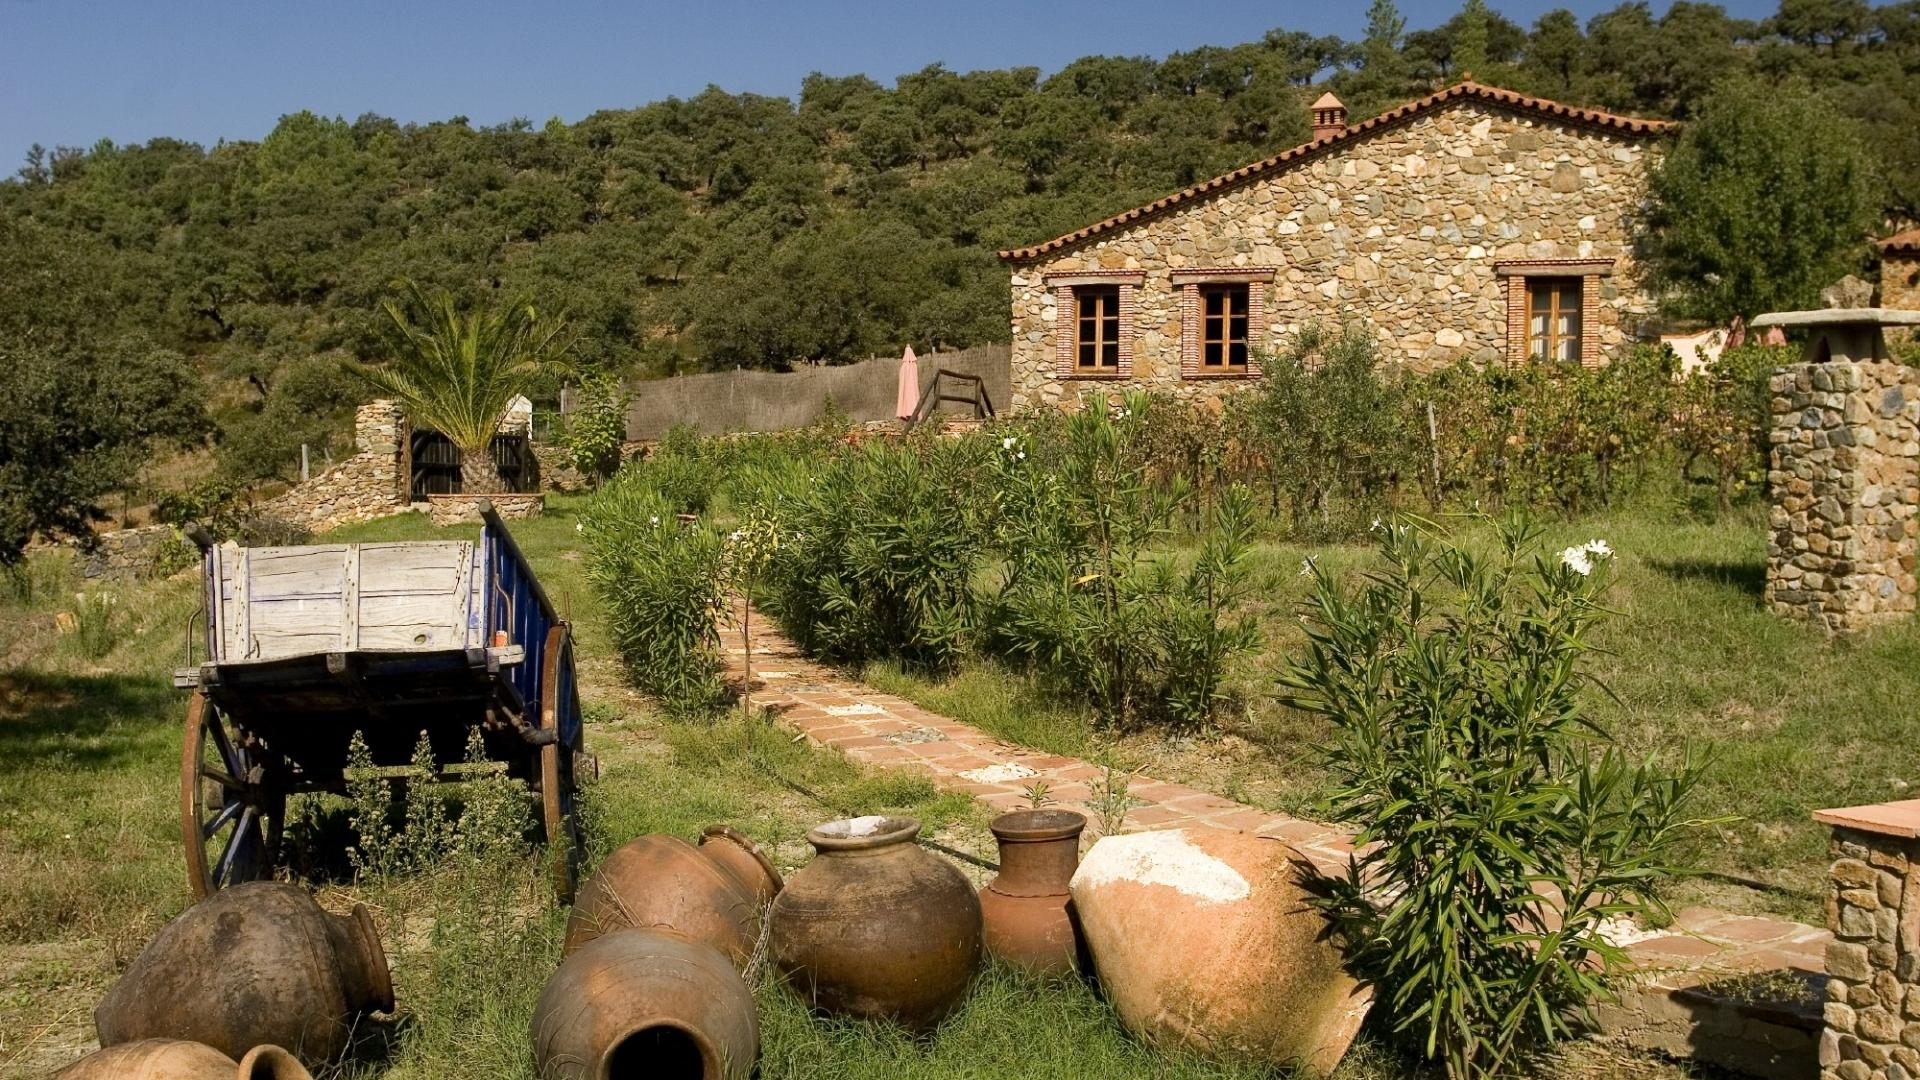 Molino Rio Alajar - rustic child-friendly holiday cottages